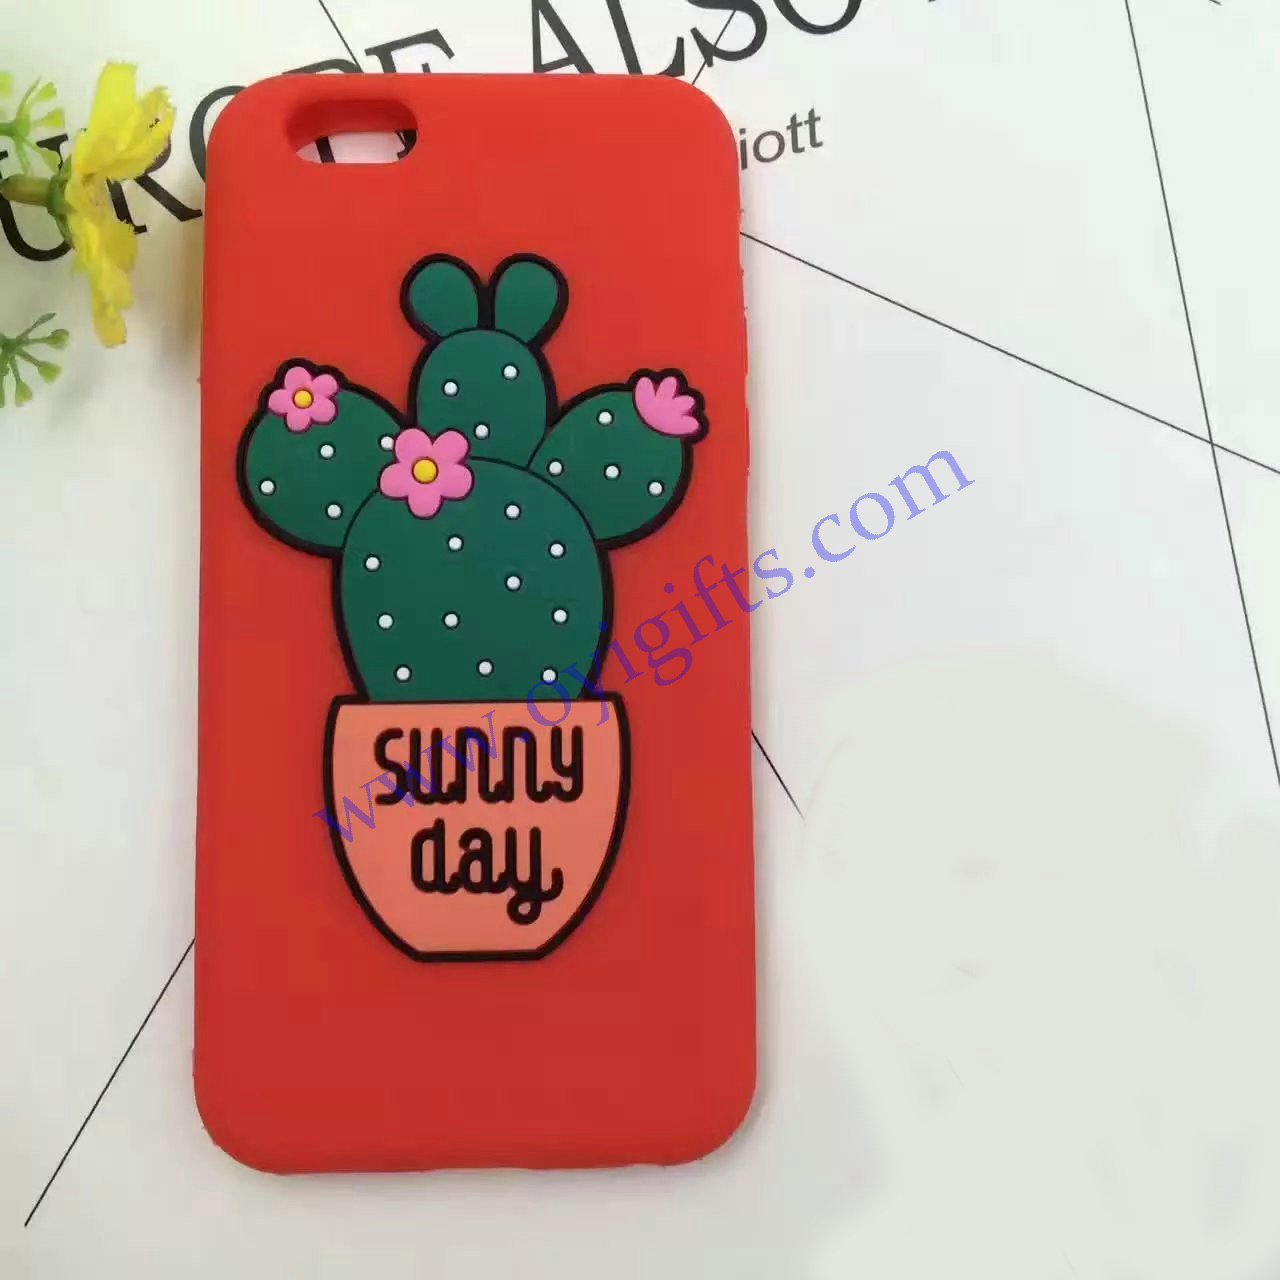 Cute Cacti Silicon phone covers case soft skin